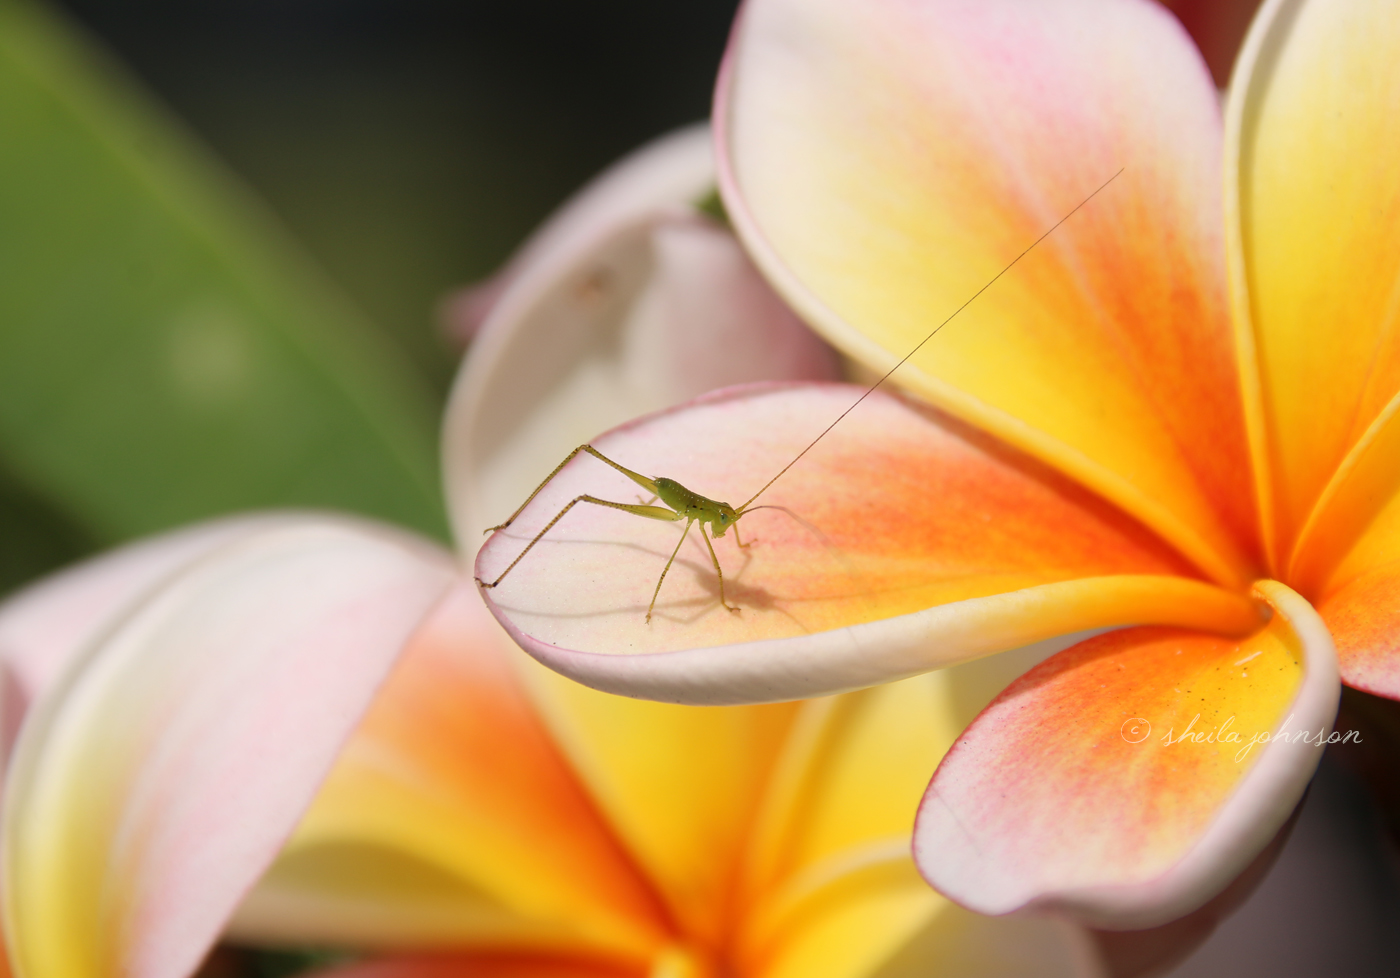 Adorning A Blooming Frangipani, This Certainly Must Be The Cutest Little Grasshopper Ever!